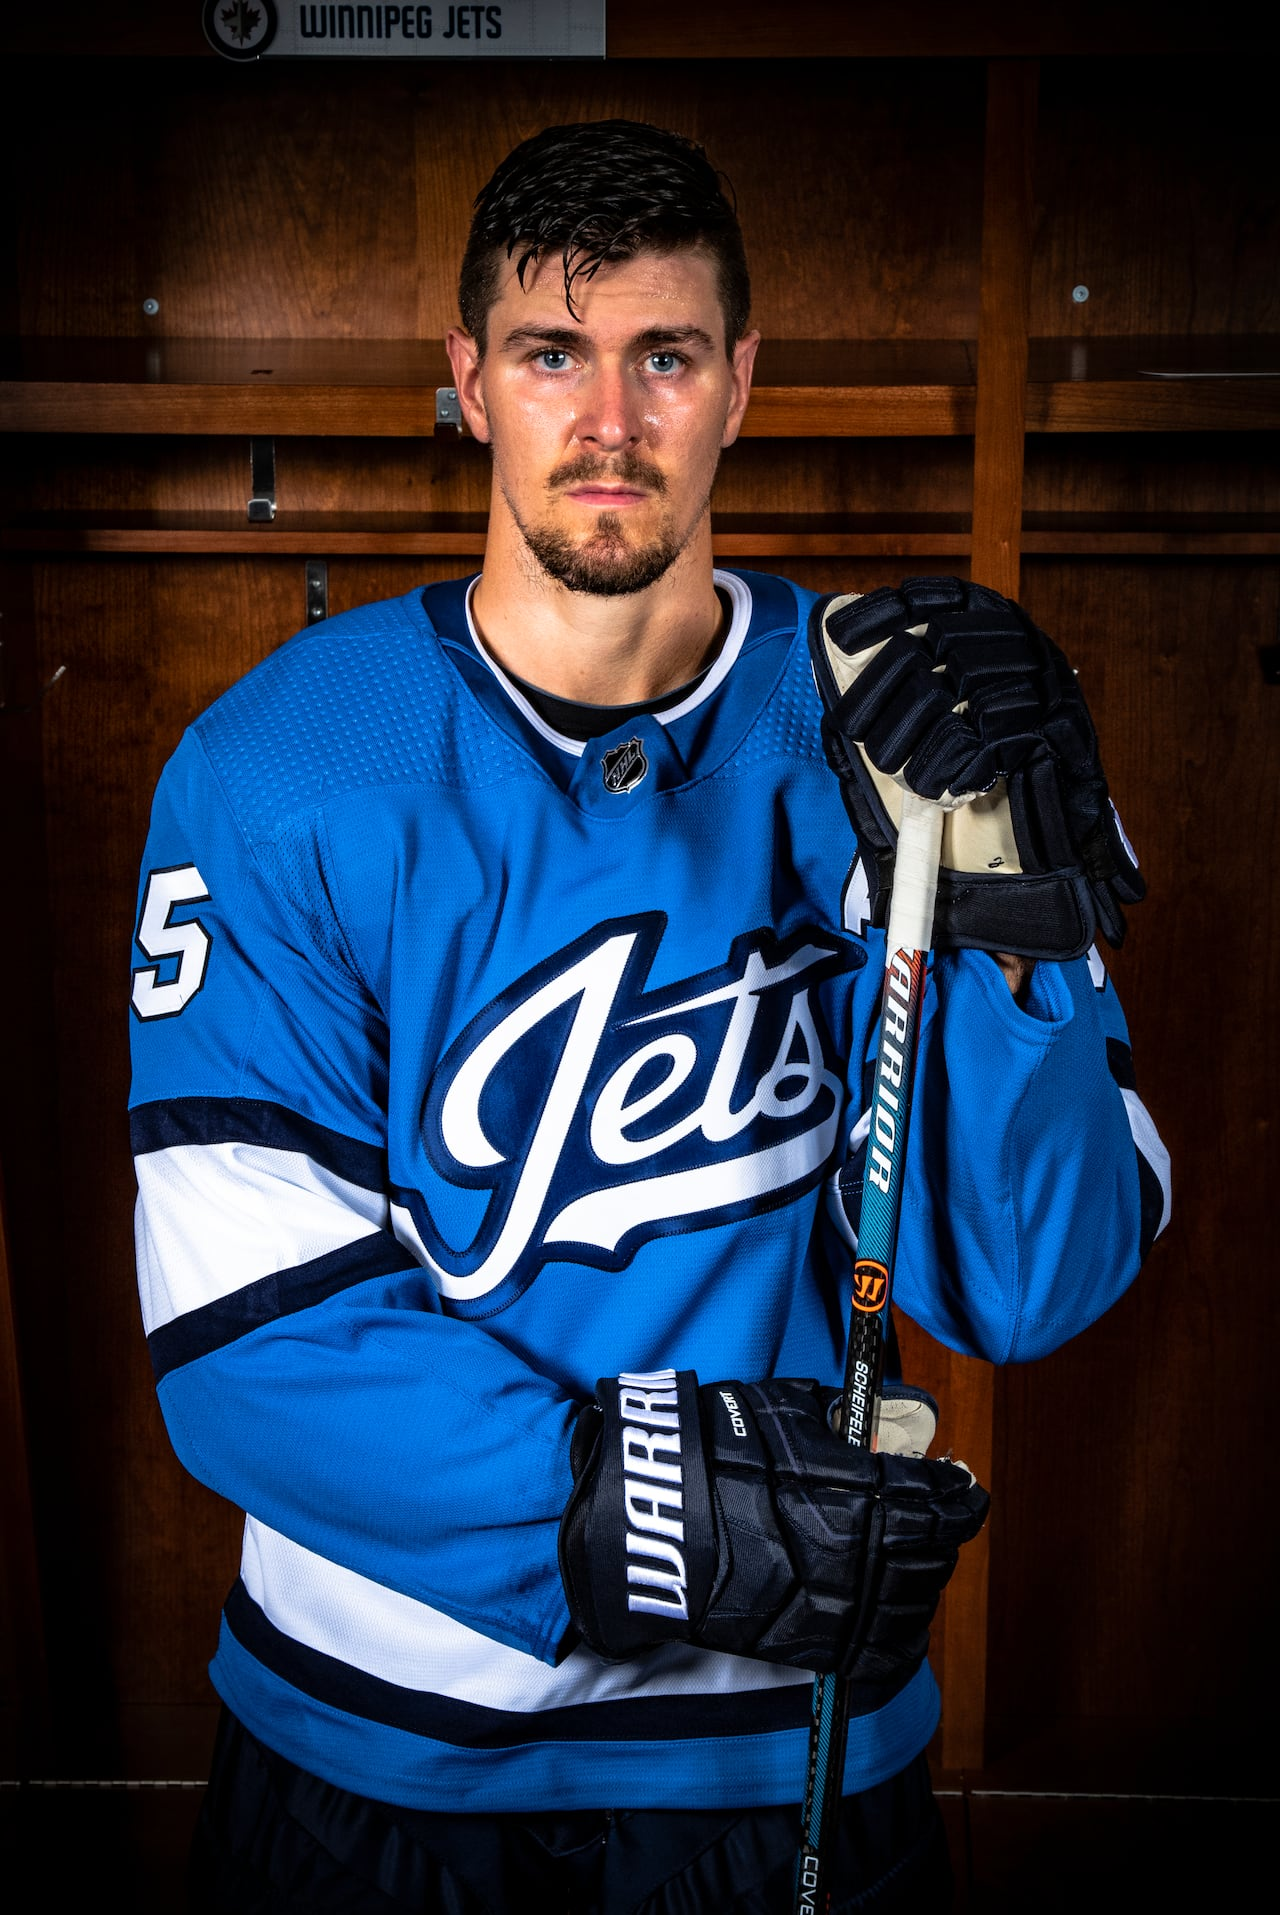 new concept 7ee7c 16497 Winnipeg Jets unveil jersey in aviator blue, with new script ...